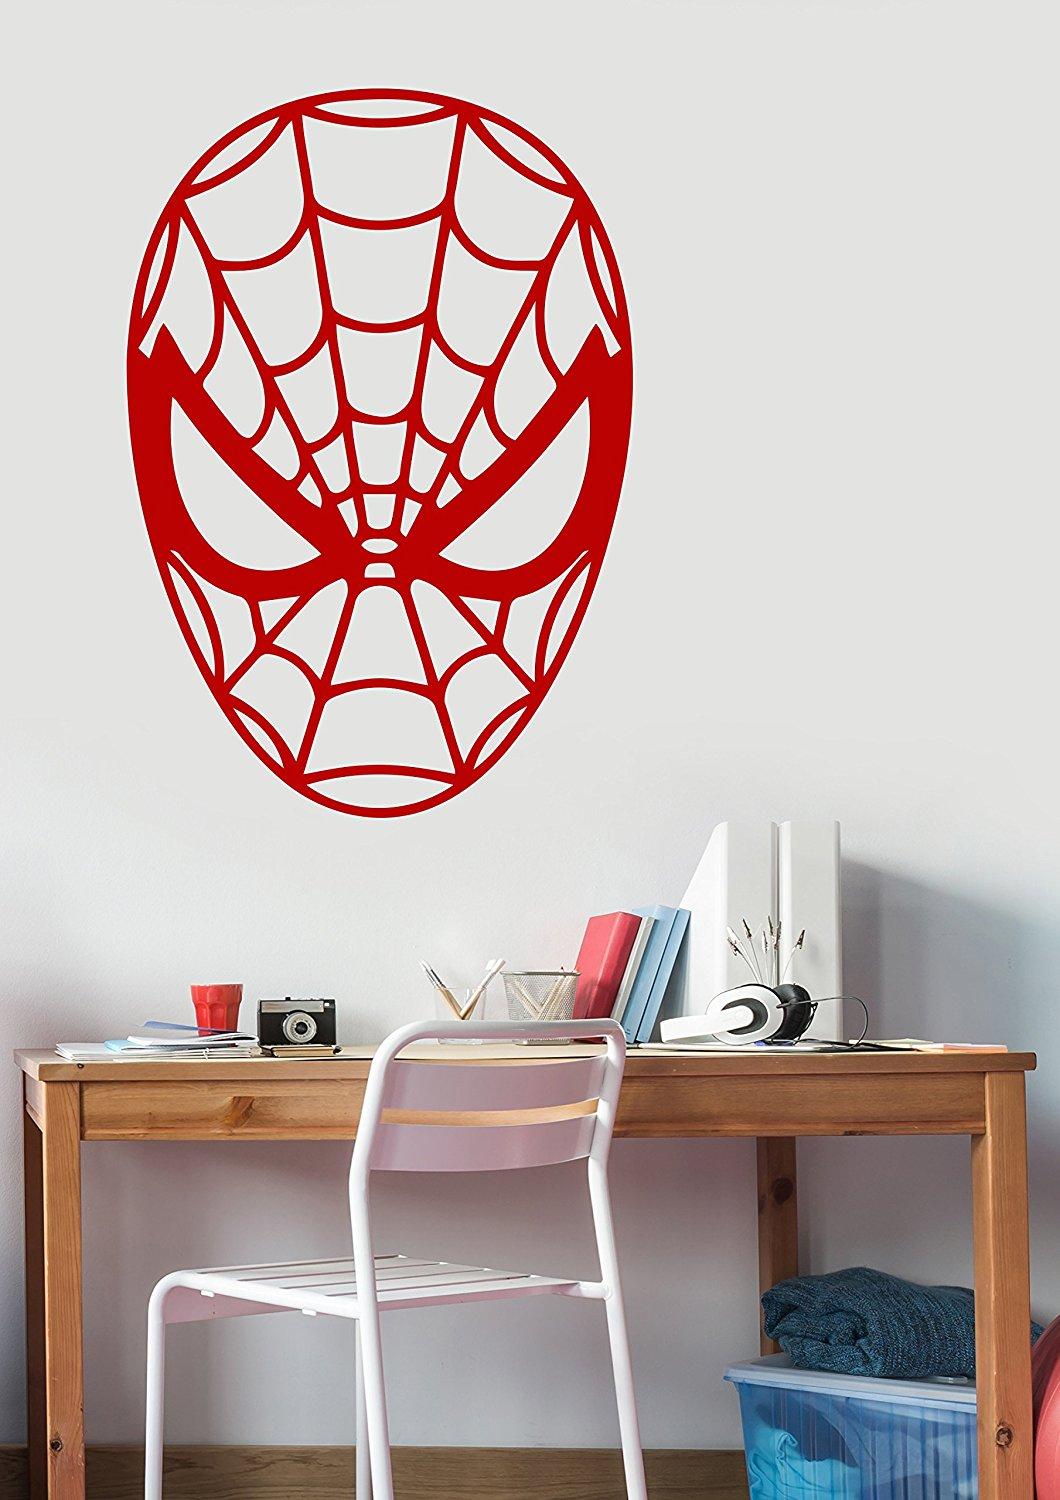 Get Quotations · Spiderman Decal Removable Vinyl Sticker Marvel Superhero  Wall Art Decorations For Home Kids Boys Room Bedroom